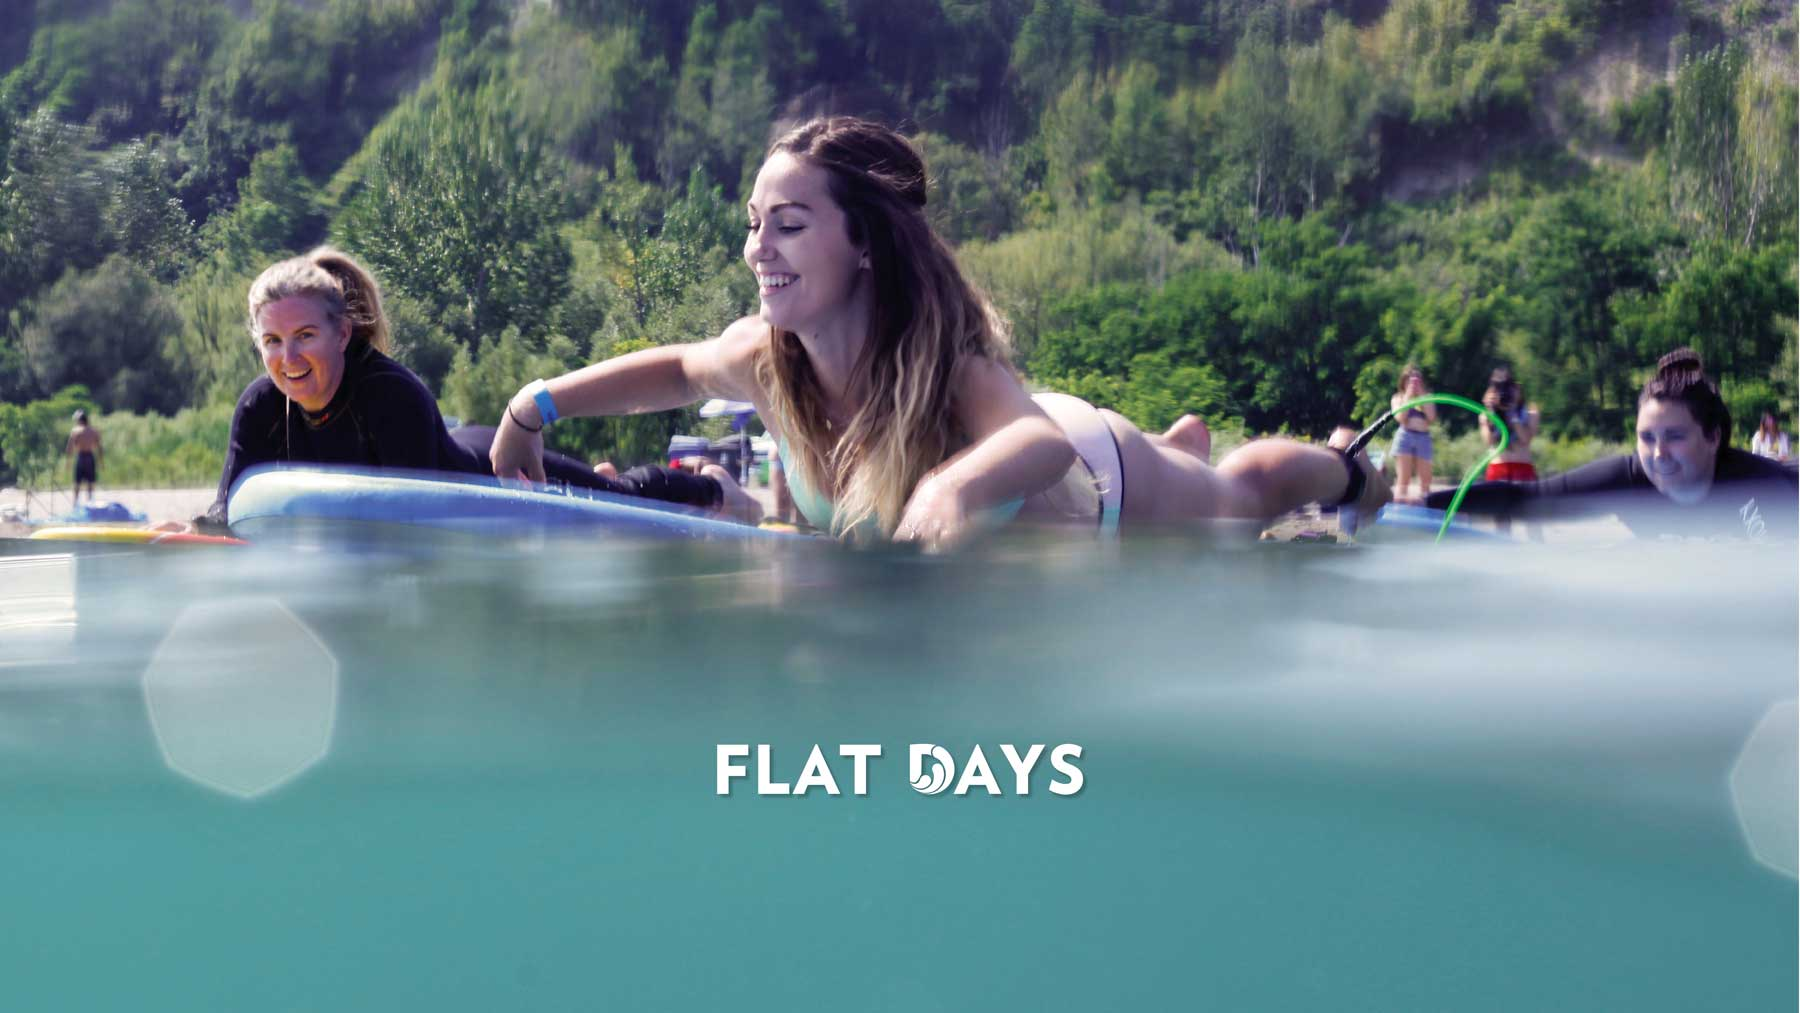 Flat Days Surf Lesson Toronto Learn to Surf on the Great Lakes Lake Ontario Surf the Greats